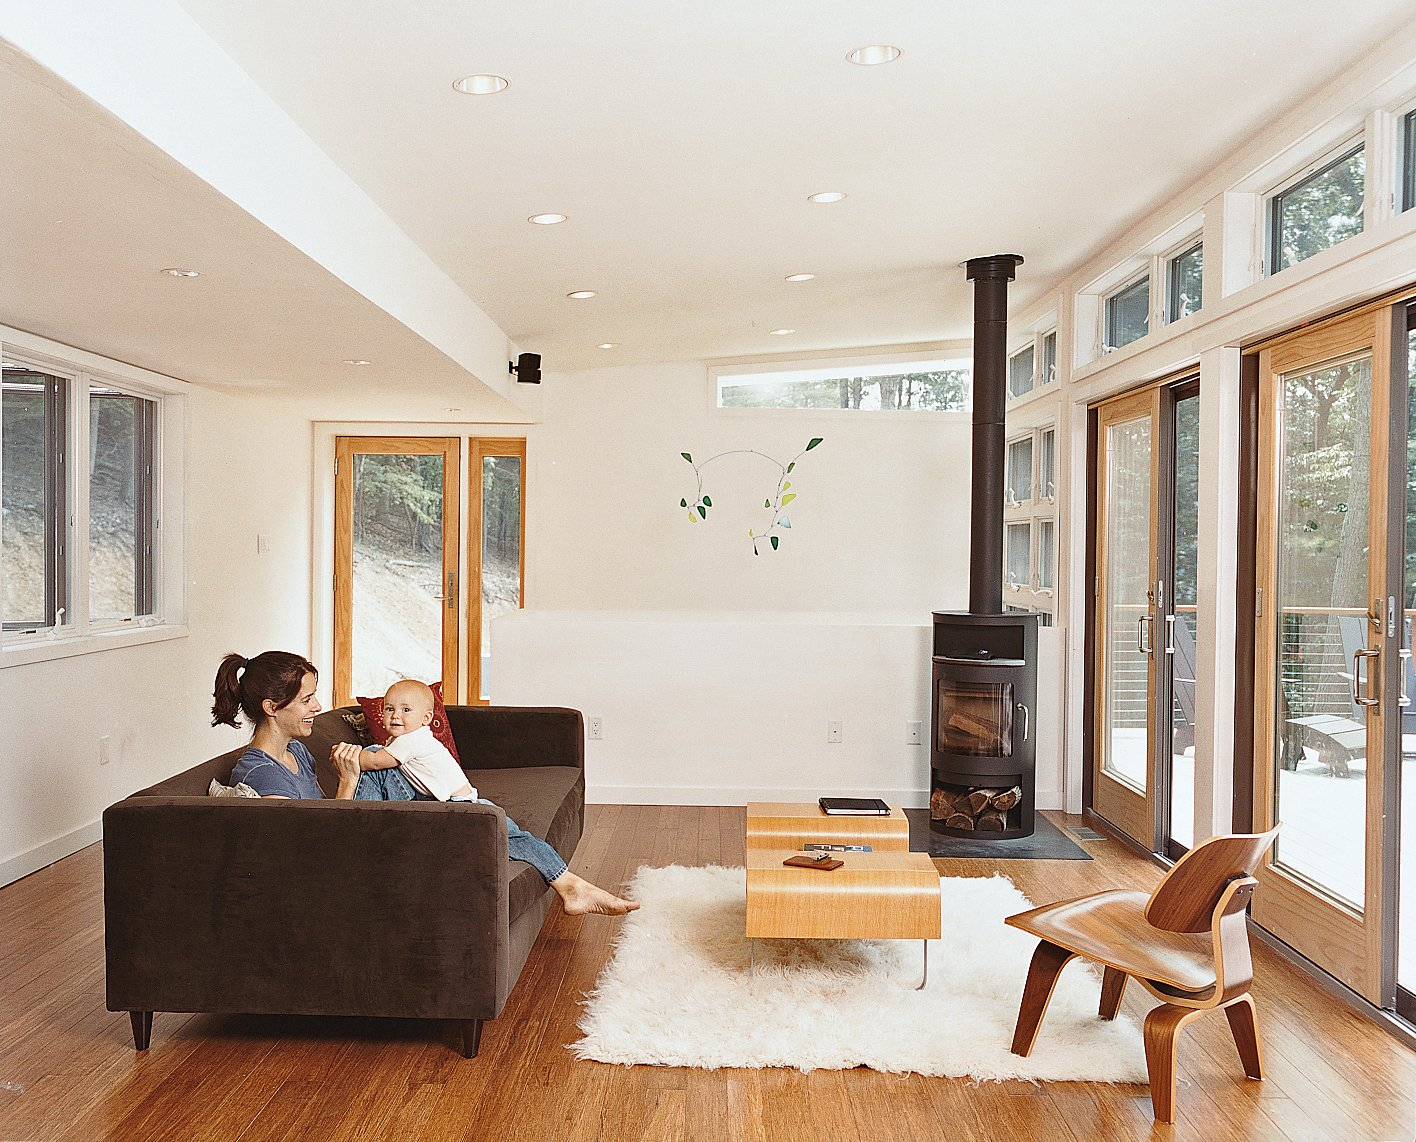 A Movie sofa, by CB2, and a Rais wood-burning stove are in the living room. Tagged: Living Room, Sofa, Chair, Medium Hardwood Floor, Wood Burning Fireplace, and Ceiling Lighting.  Modern Wood-Burning Stoves by Megan Hamaker from Take Me Home